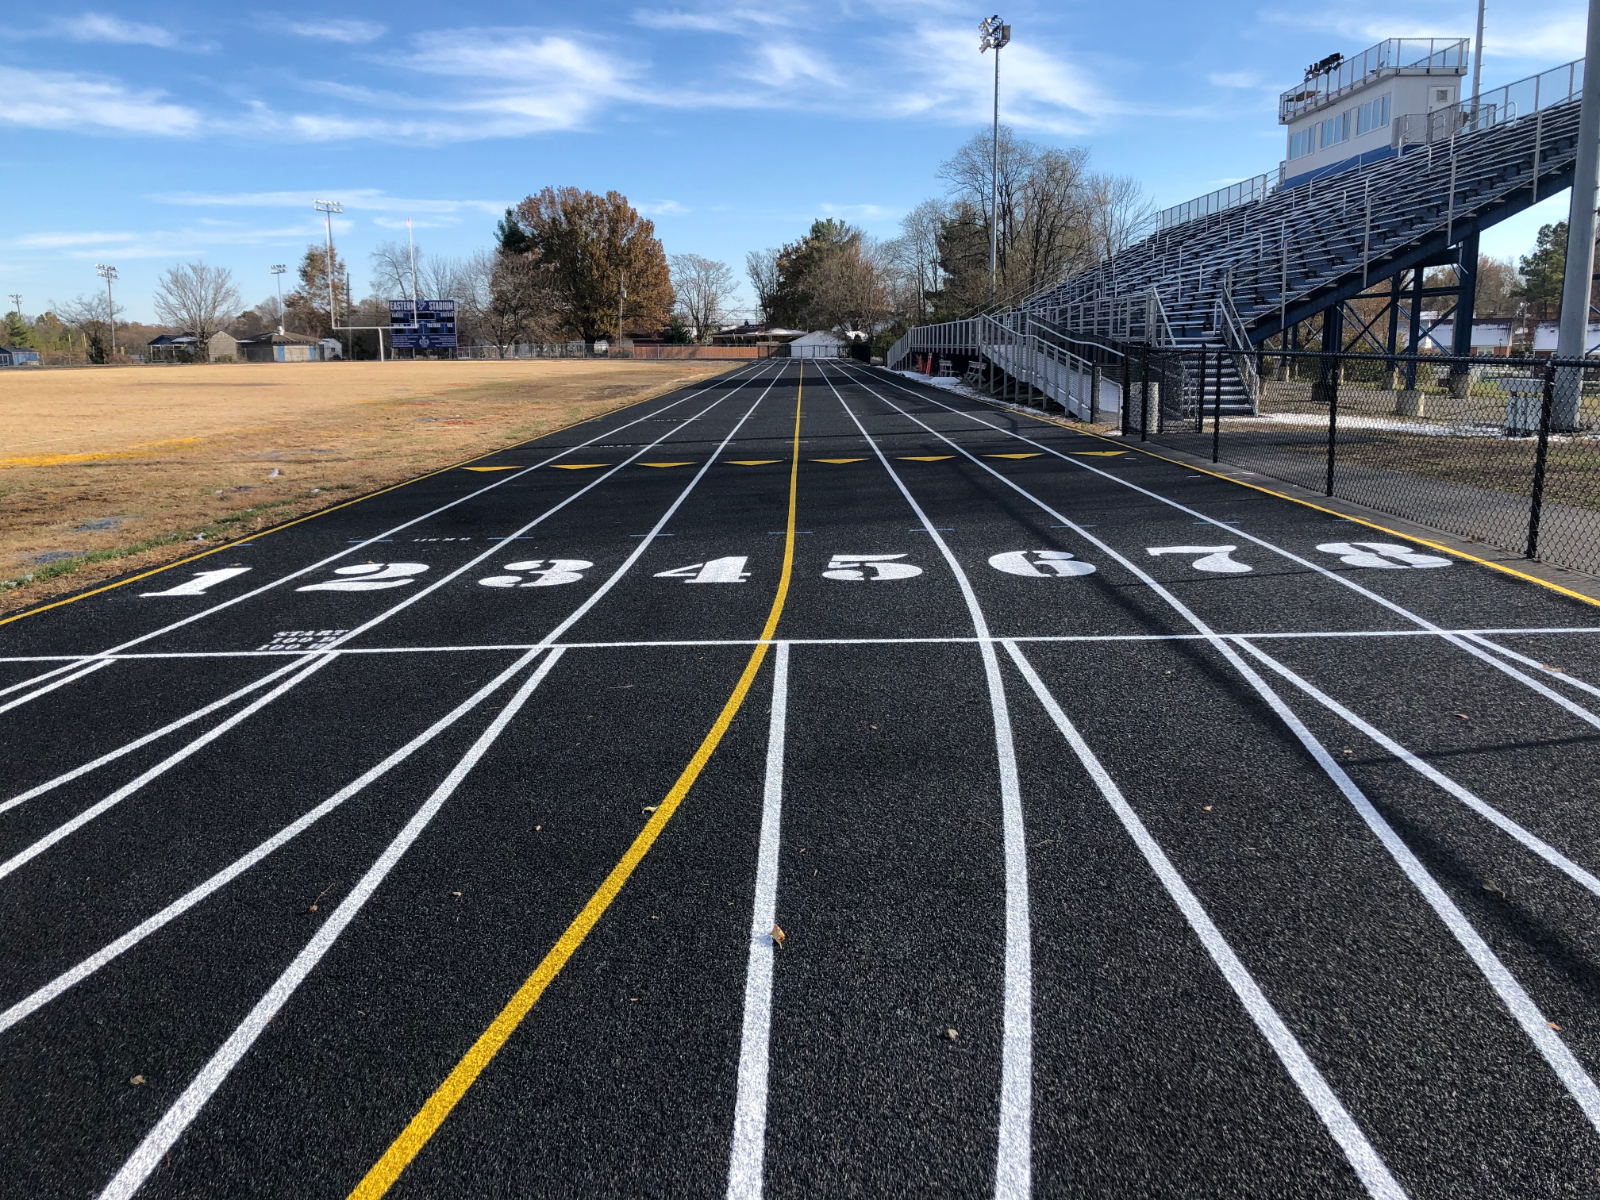 Eastern Track Excited for Home Schedule this Spring